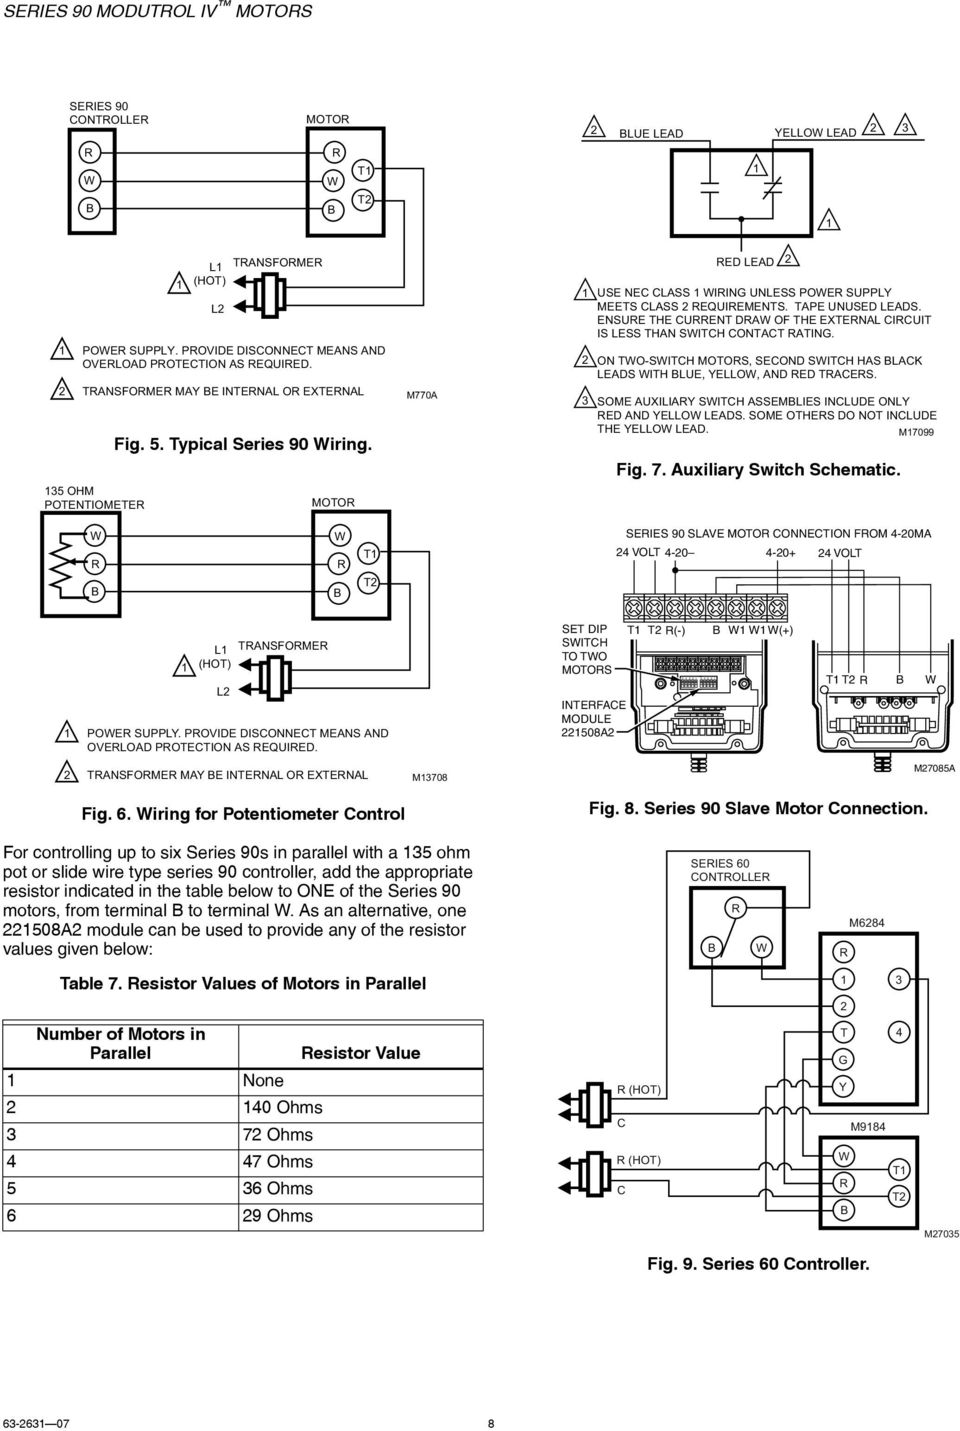 Series 90 Modutrol Iv Motors Pdf 0413 Rocker Switch Wiring Diagram Ensure The Current Draw Of External Circuit Is Less Than Contact Rating On Two